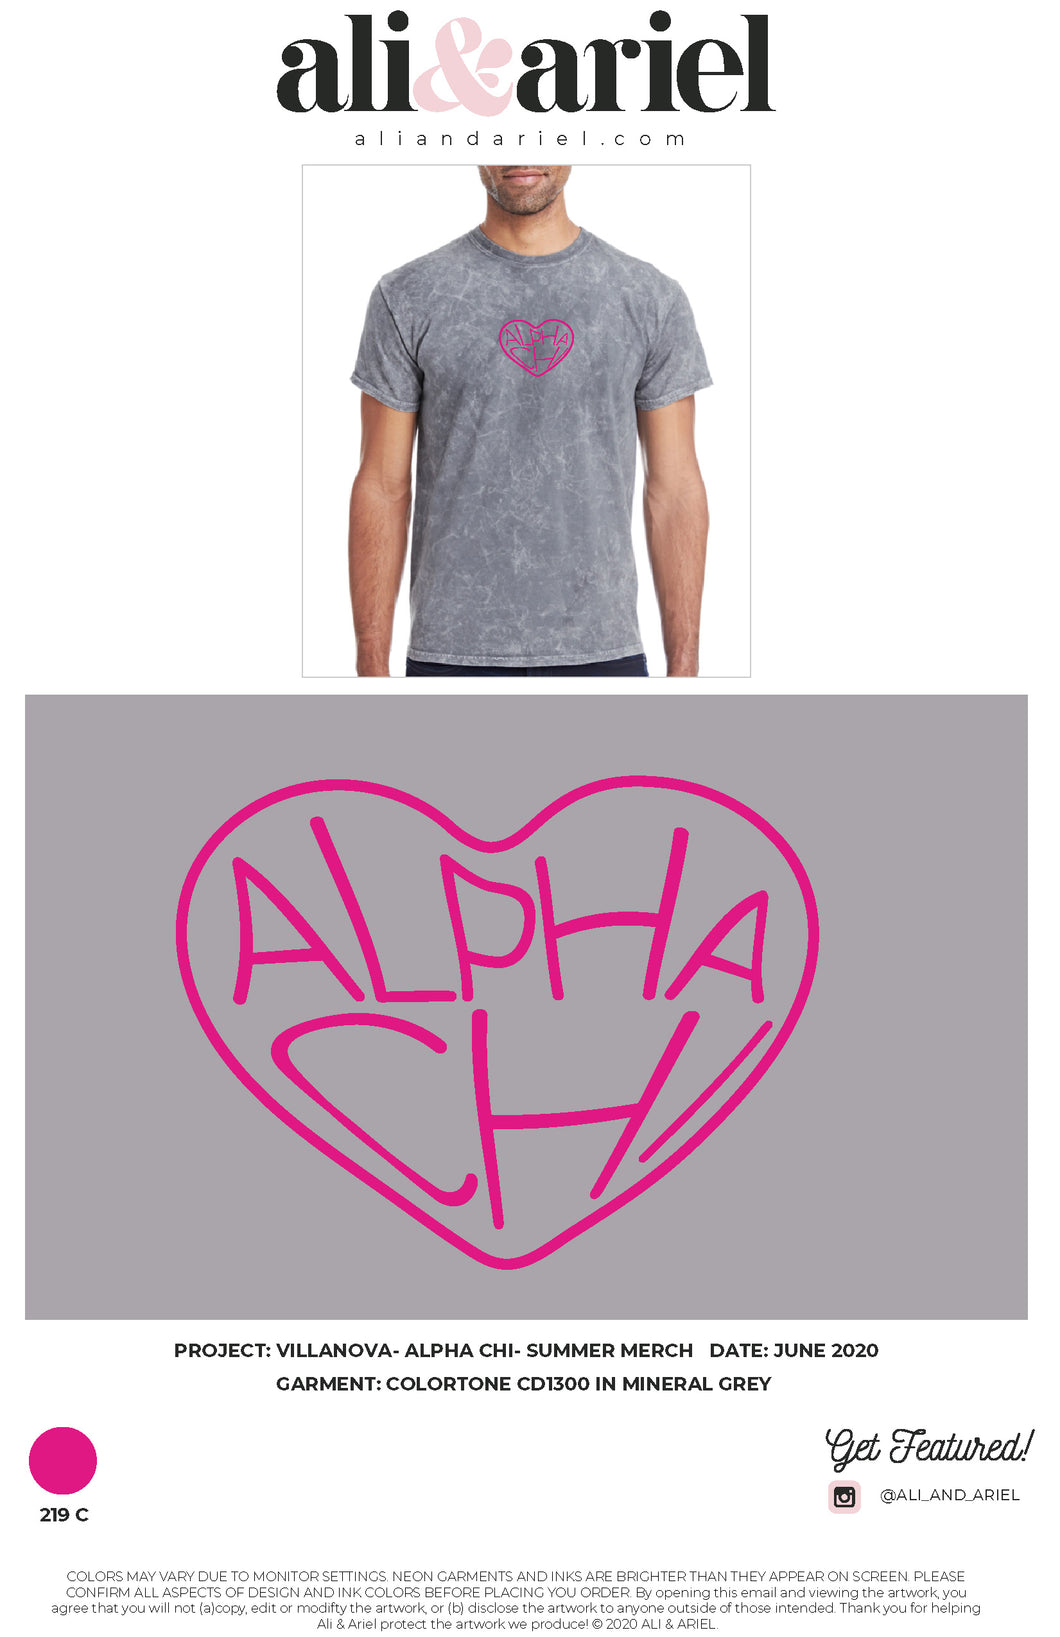 VINTAGE EMBROIDERED TEES. Villanova- Alpha Chi- Summer Merch